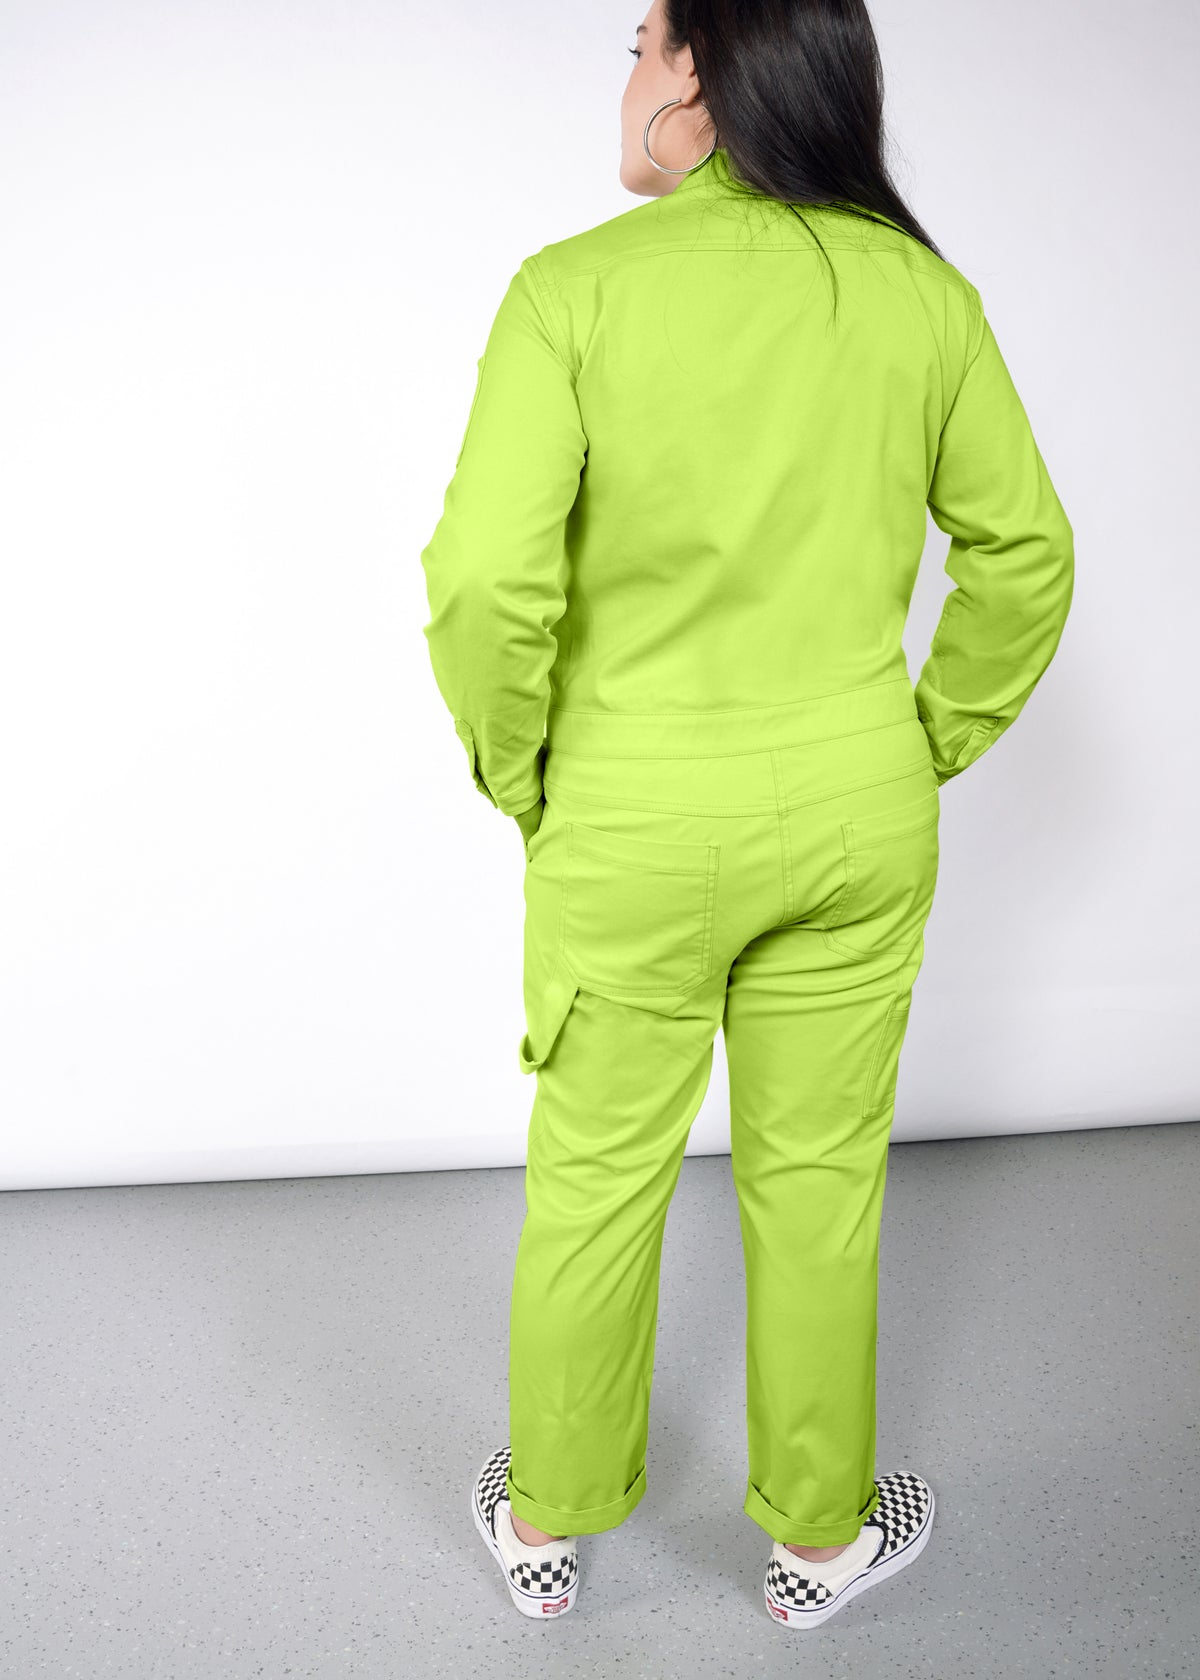 Model wearing neon green long sleeved essential coverall jumpsuit in size large, hands in pockets, turned away